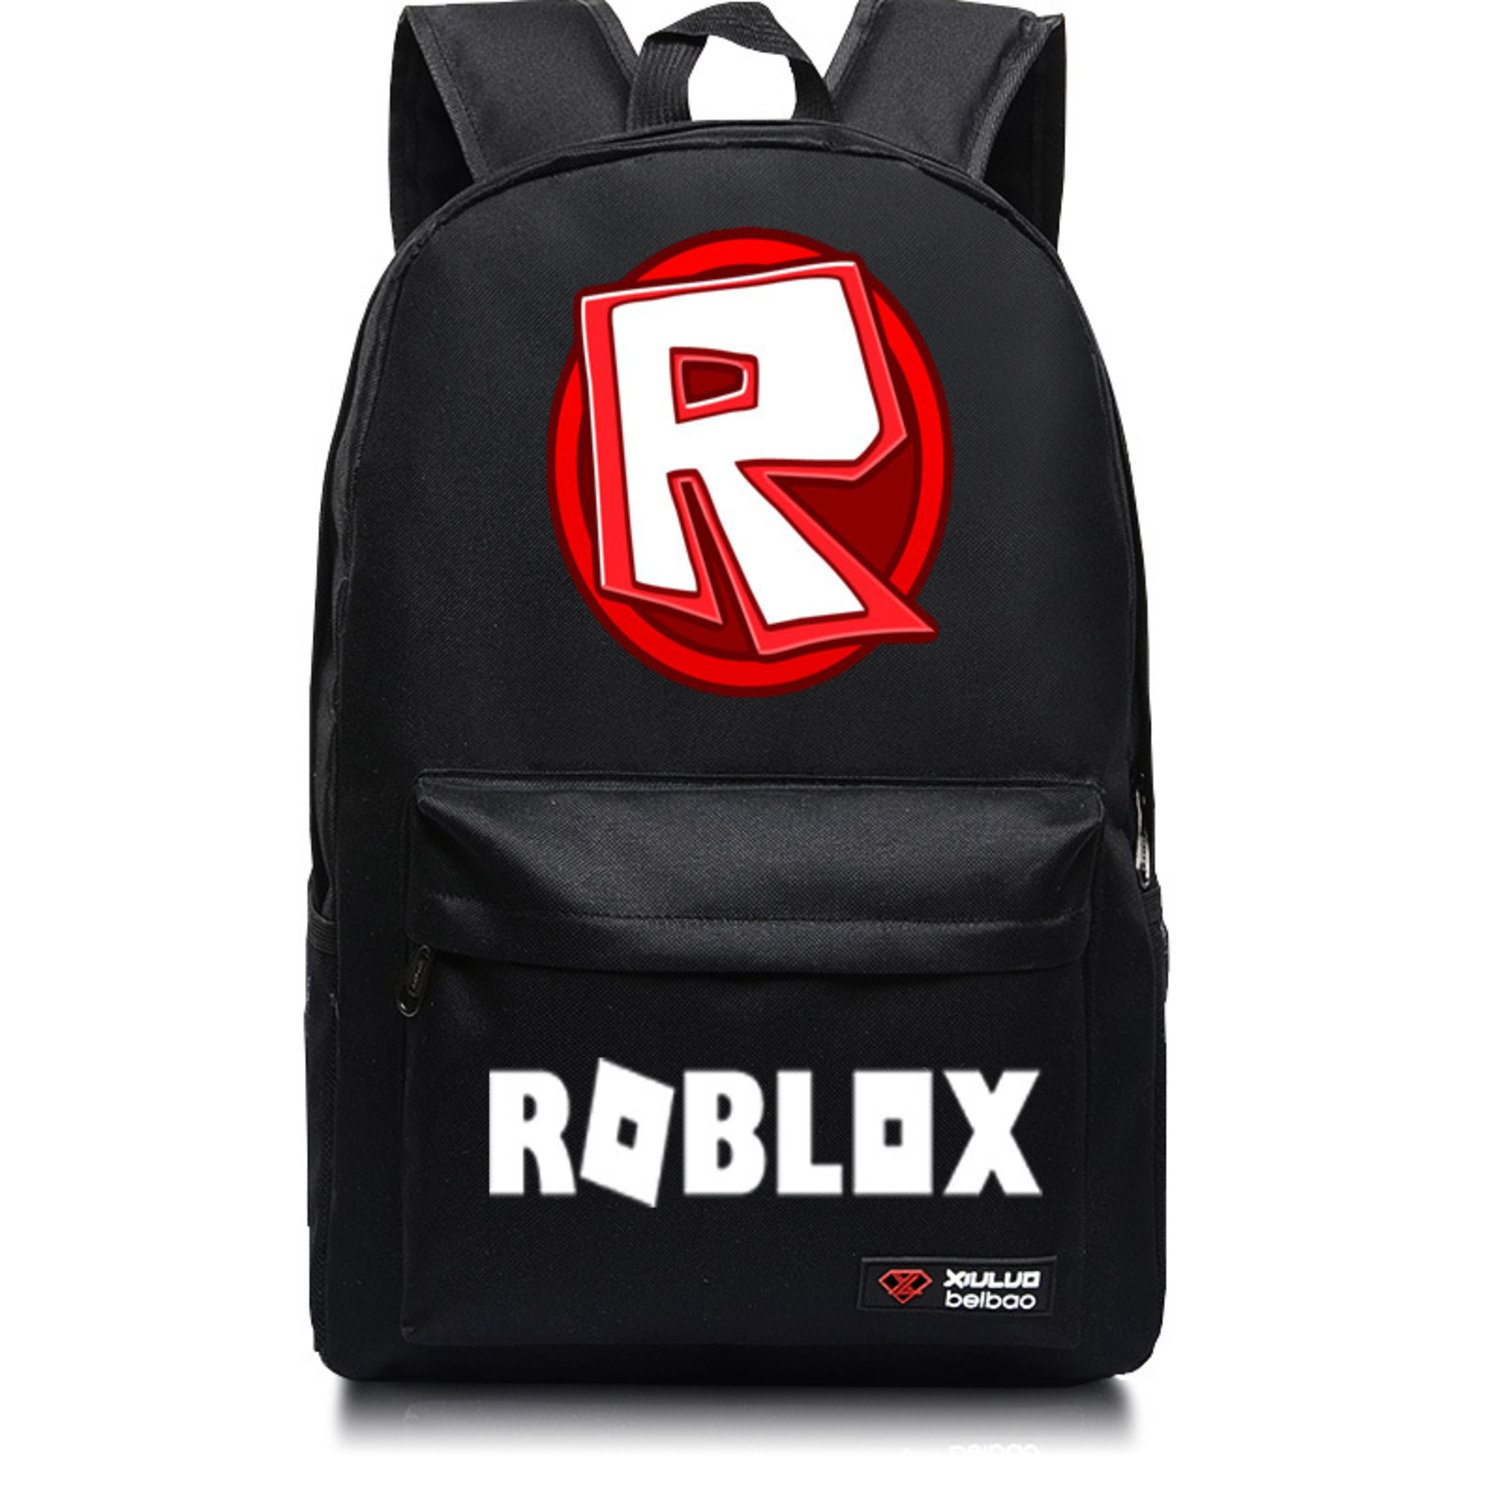 c6fe6670938f Source · Kids Schoolbag Backpack with Roblox St 333076842 Sangguoer p Kids  Schoolbag Backpack with Roblox Students Bookbag Handbags Travelbag ...